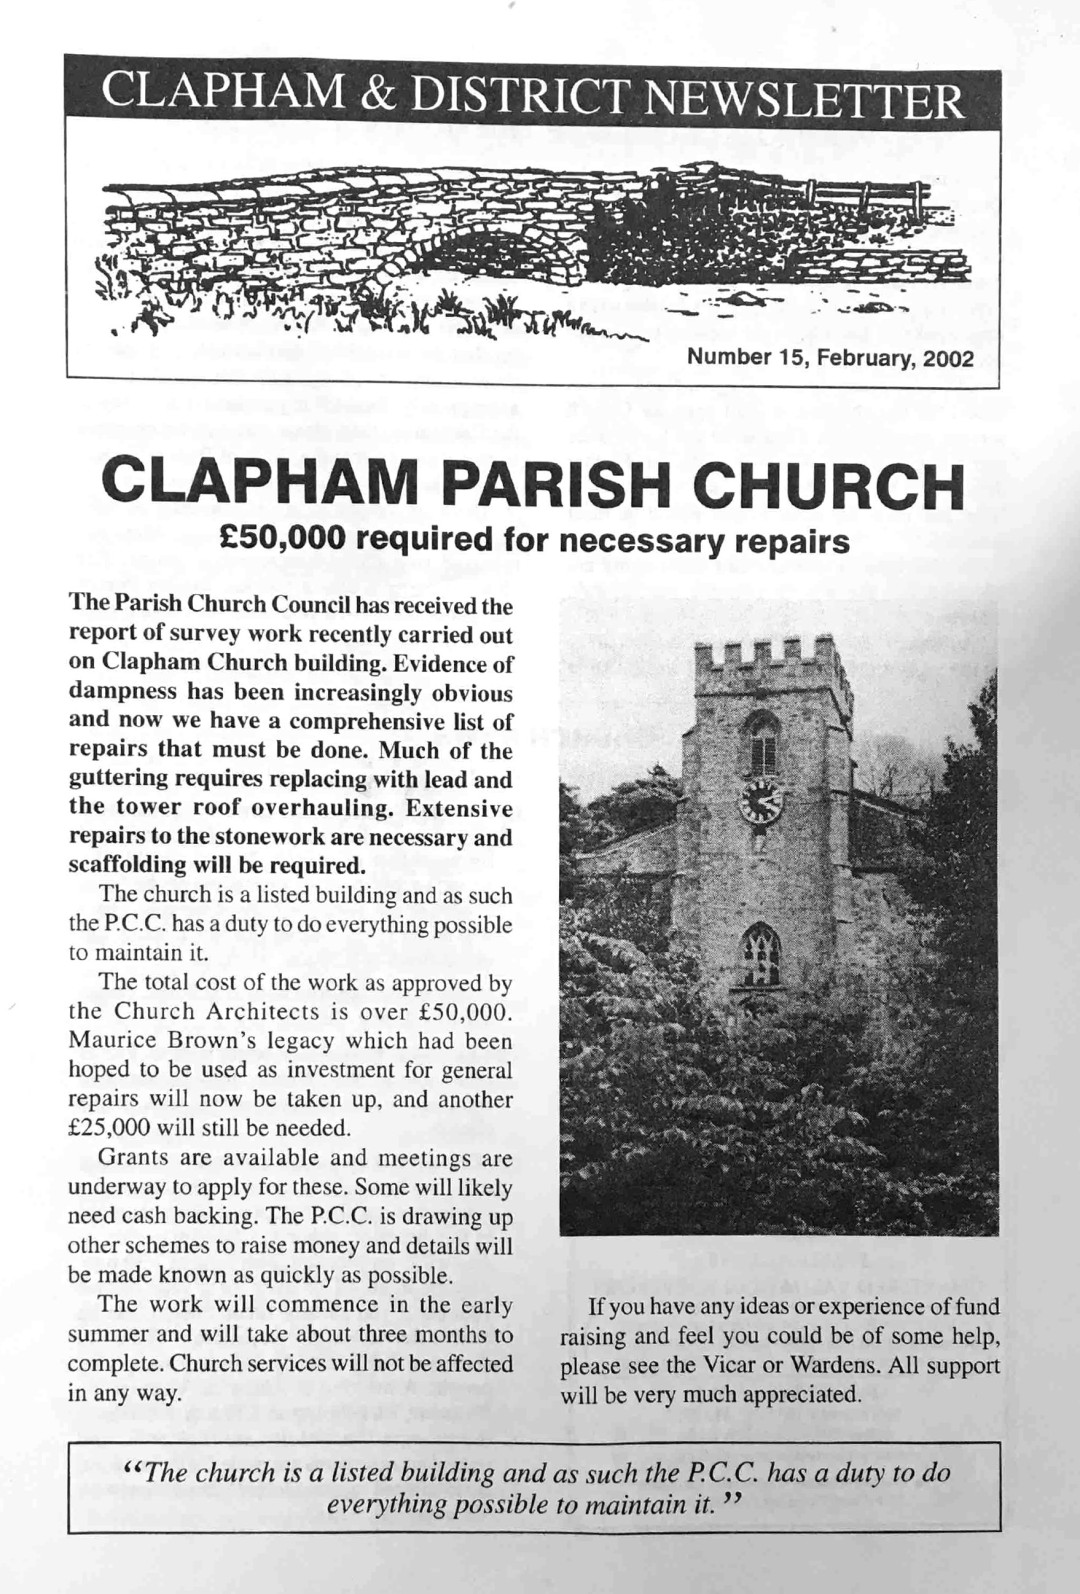 Clapham_Newsletter_No15_February_2002-1